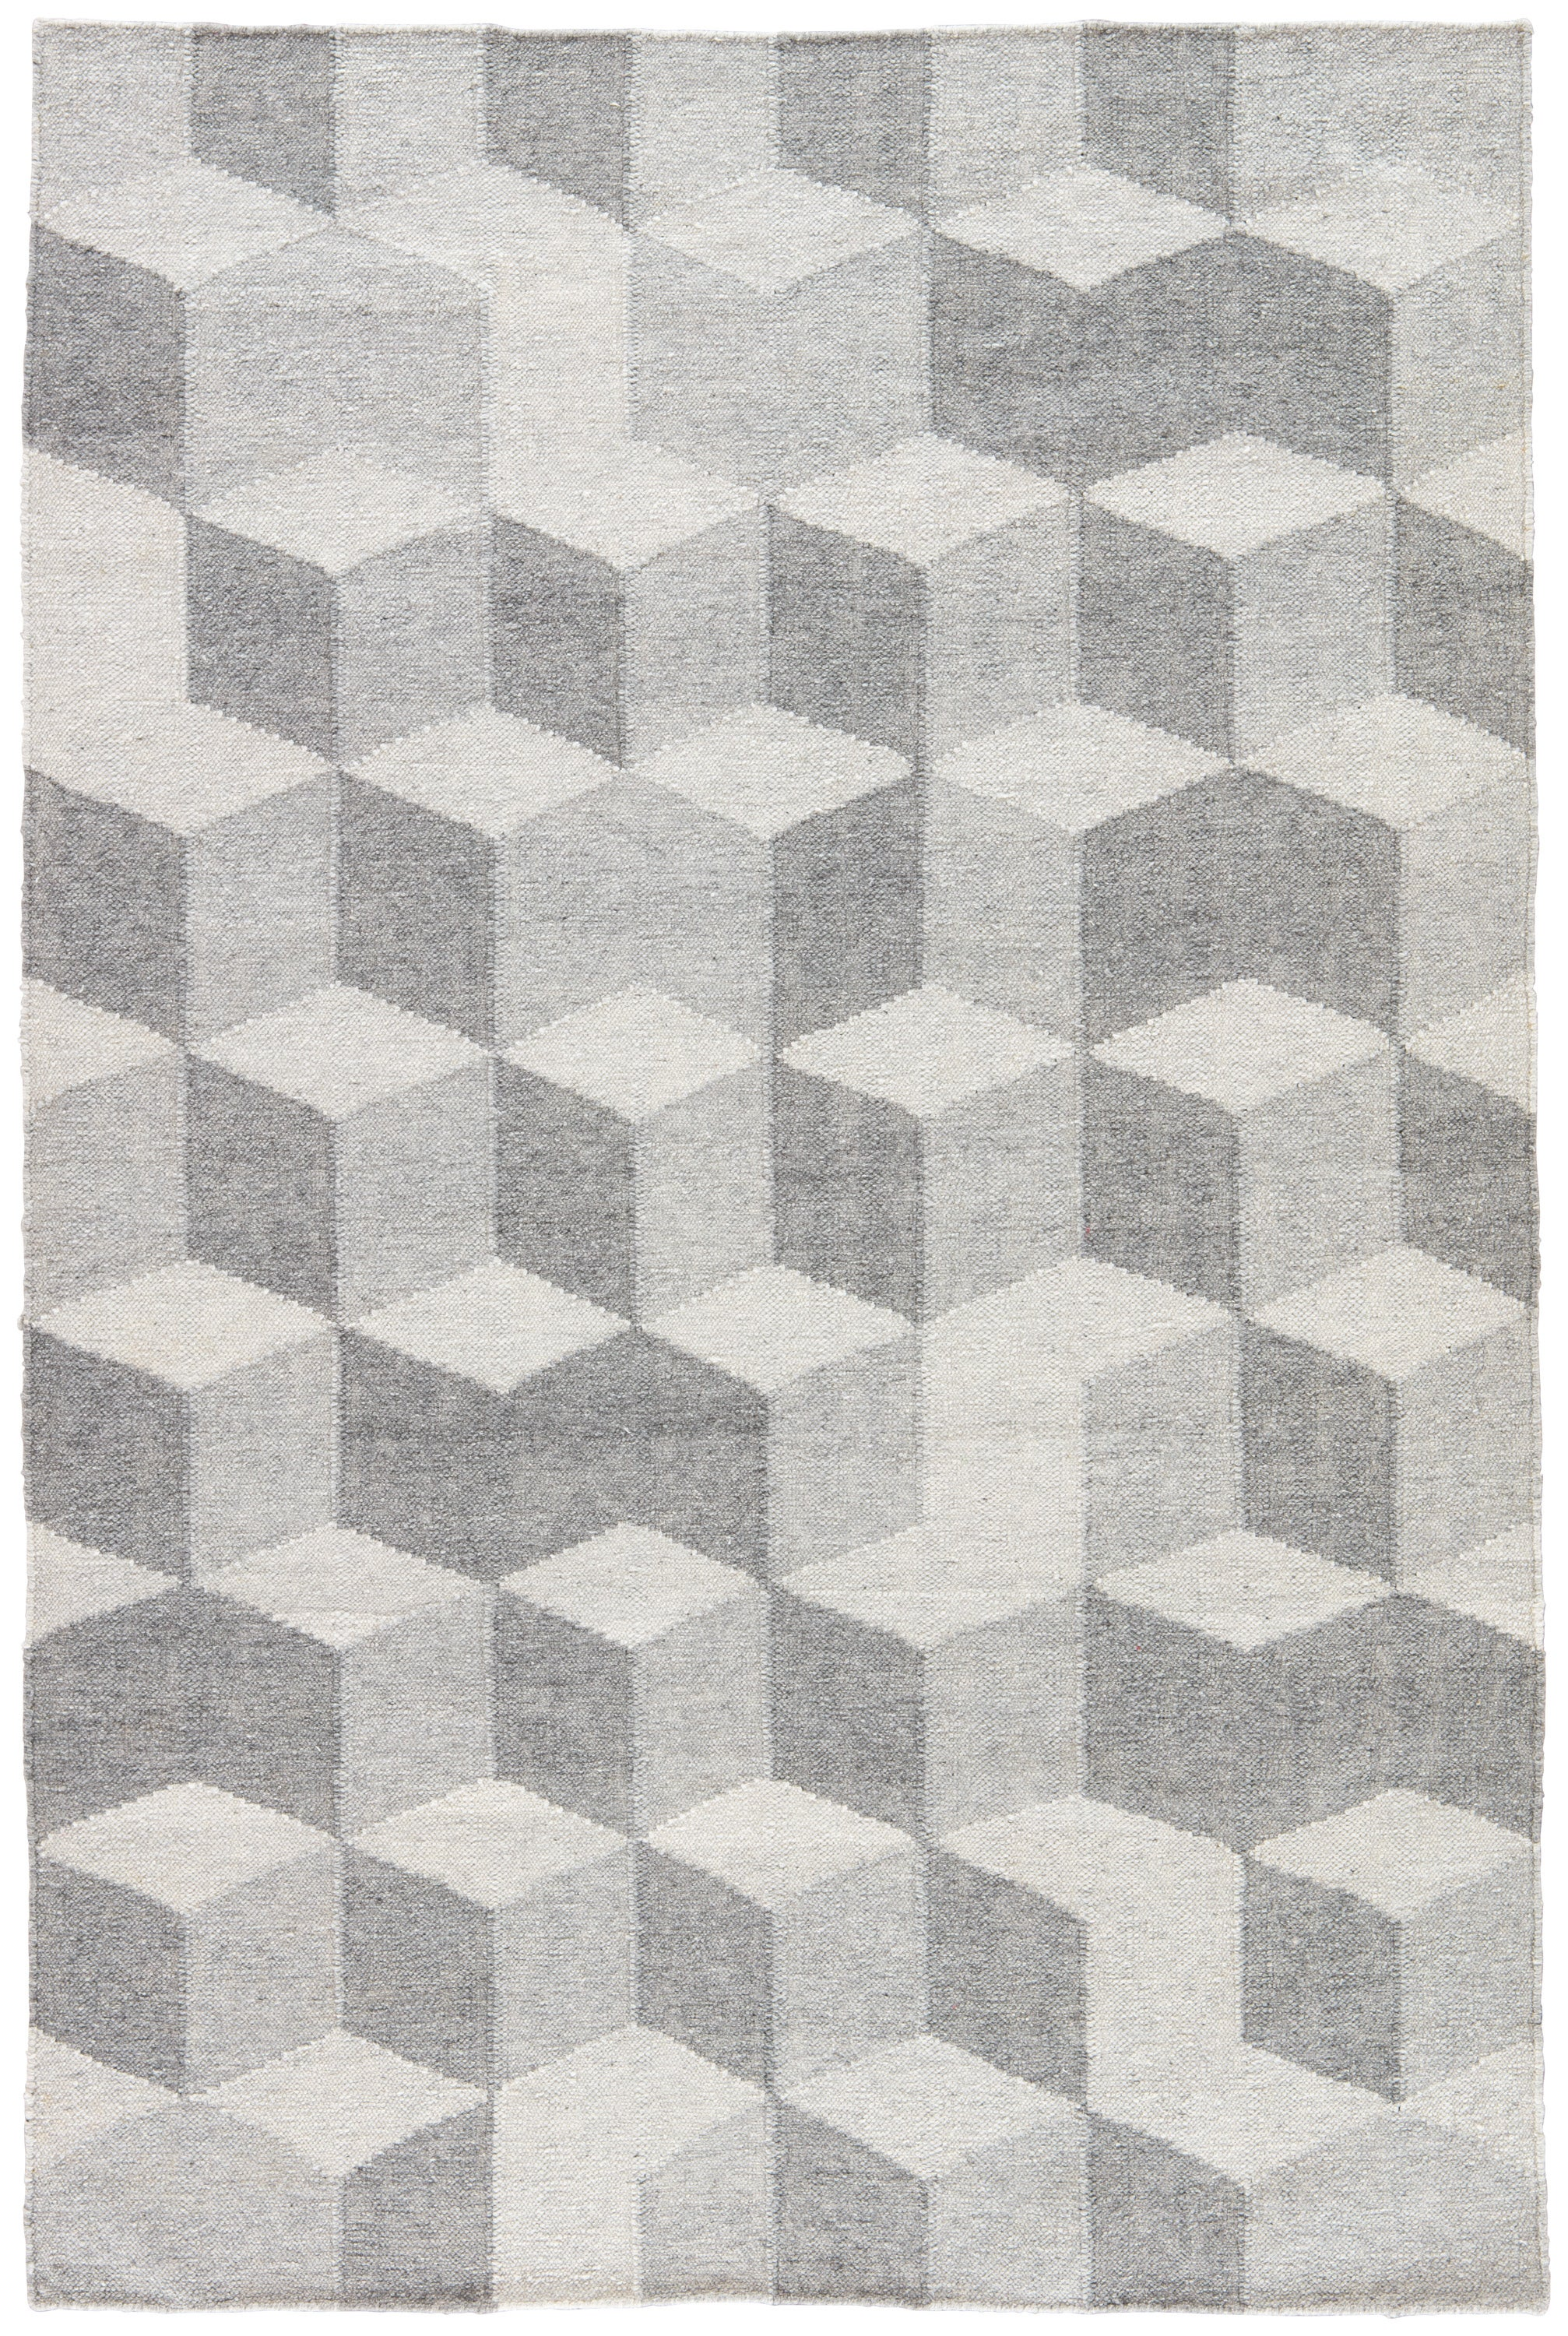 Rectangle Gray Geometric Dhurrie Synthetics Contemporary recommended for Bedroom, Bathroom, Outdoor, Dining Room, Office, Hallway, Living Room